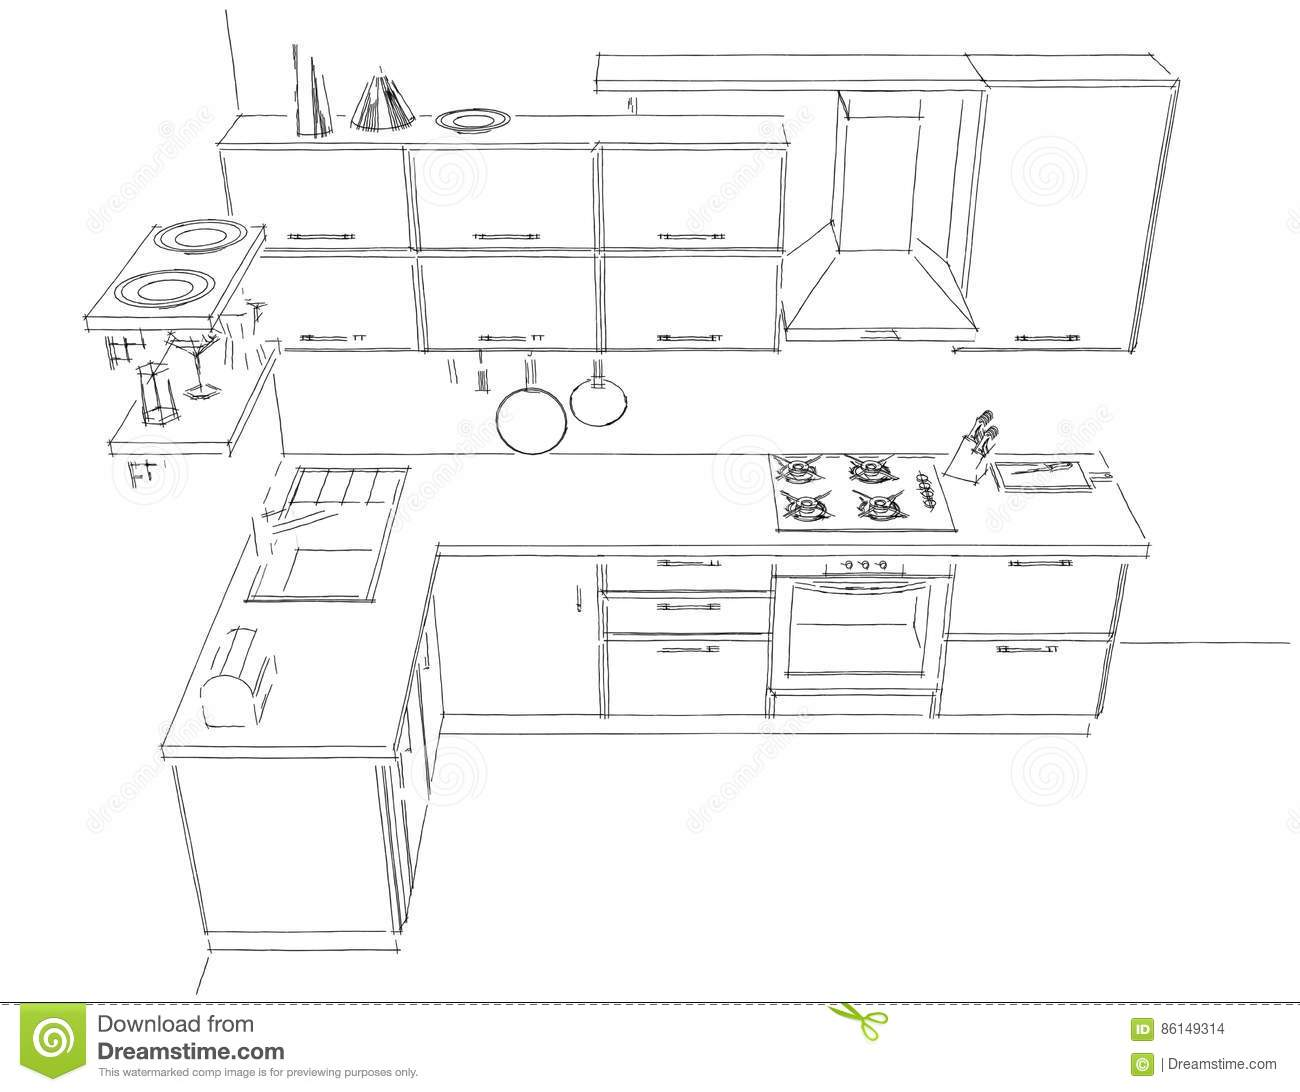 Eccezionale Disegna Cucina 3d. Simple Living Room D Design Hq Rendering With  WI64